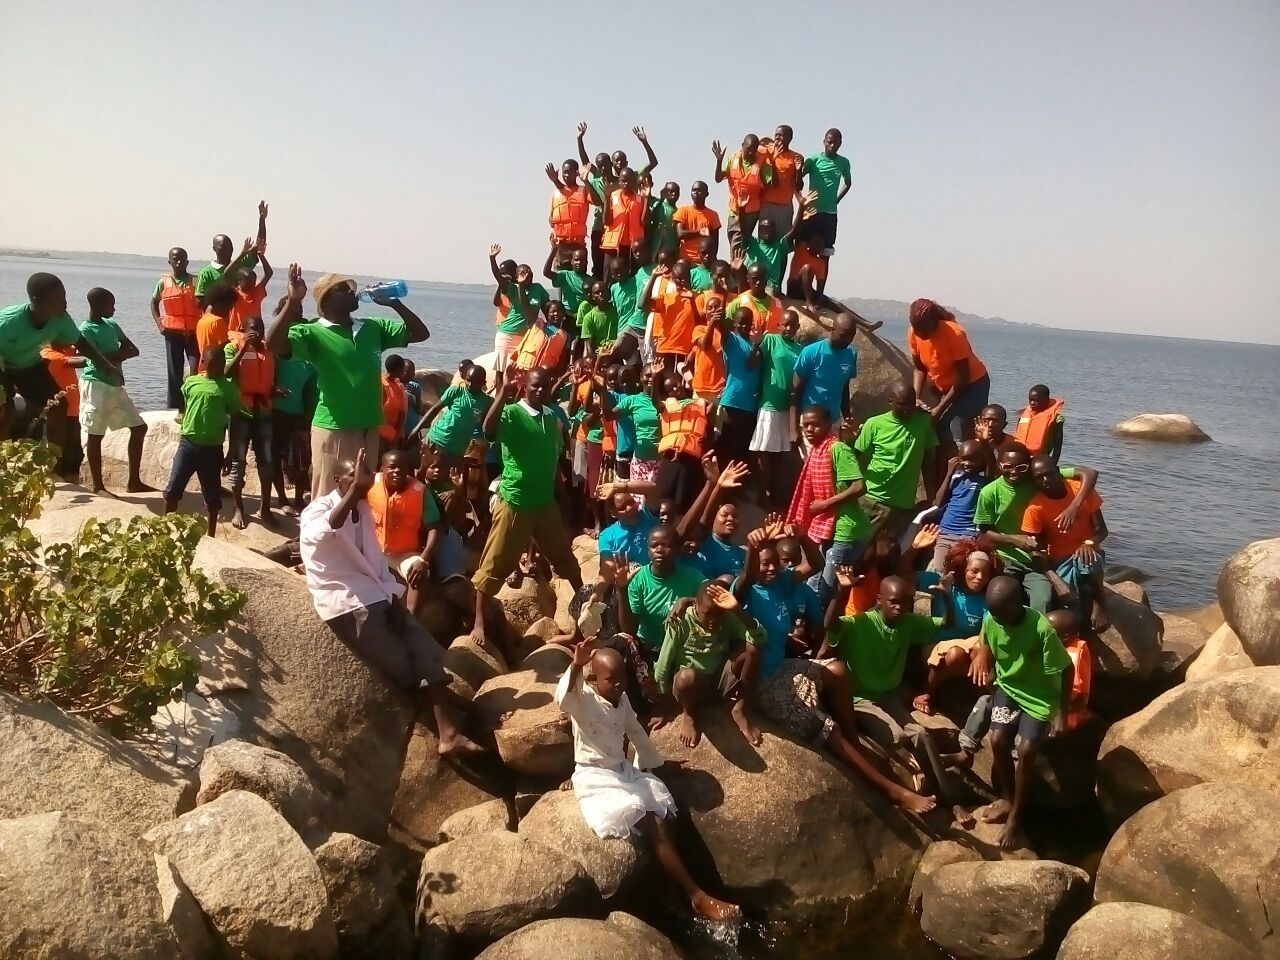 The campers and staff at the United Youth Camp in Kenya.